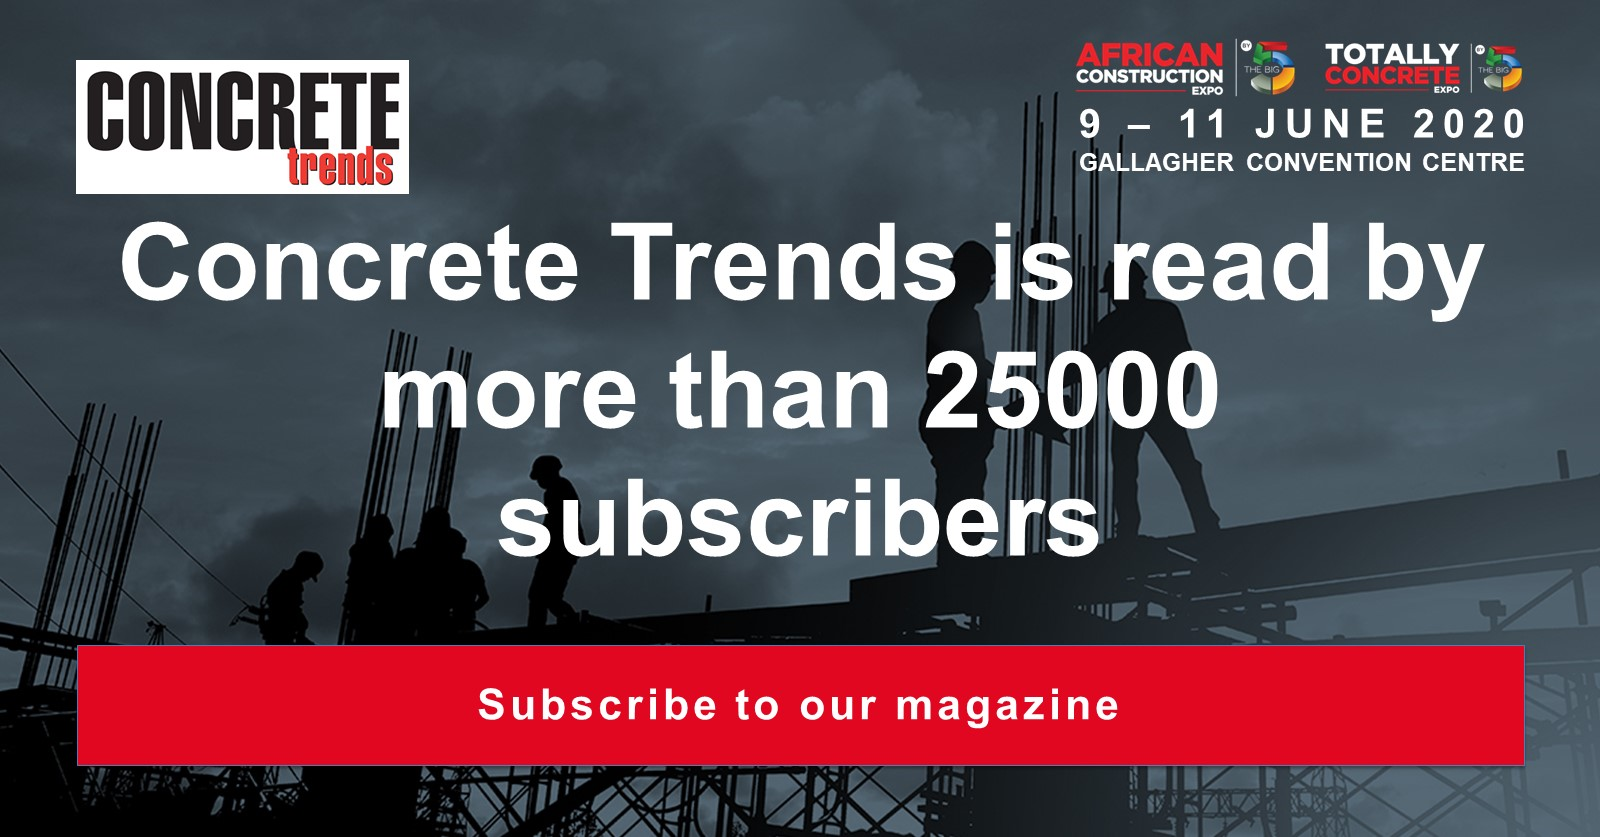 Concrete Trends is read by more than 25000 subscribers